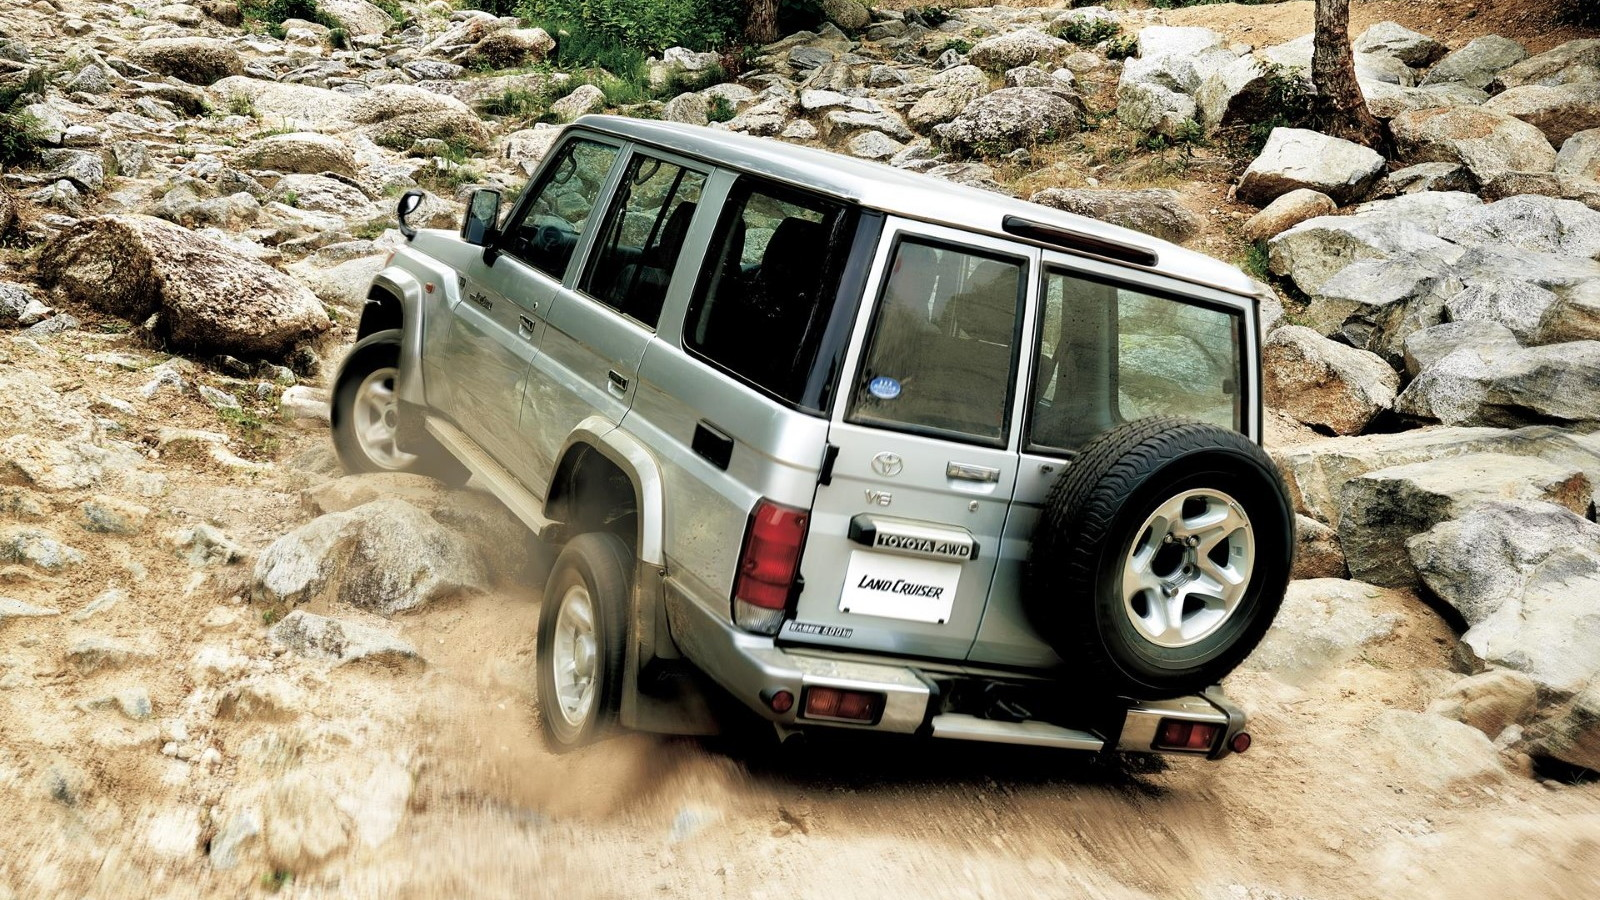 Toyota Land Cruiser 70 limited edition